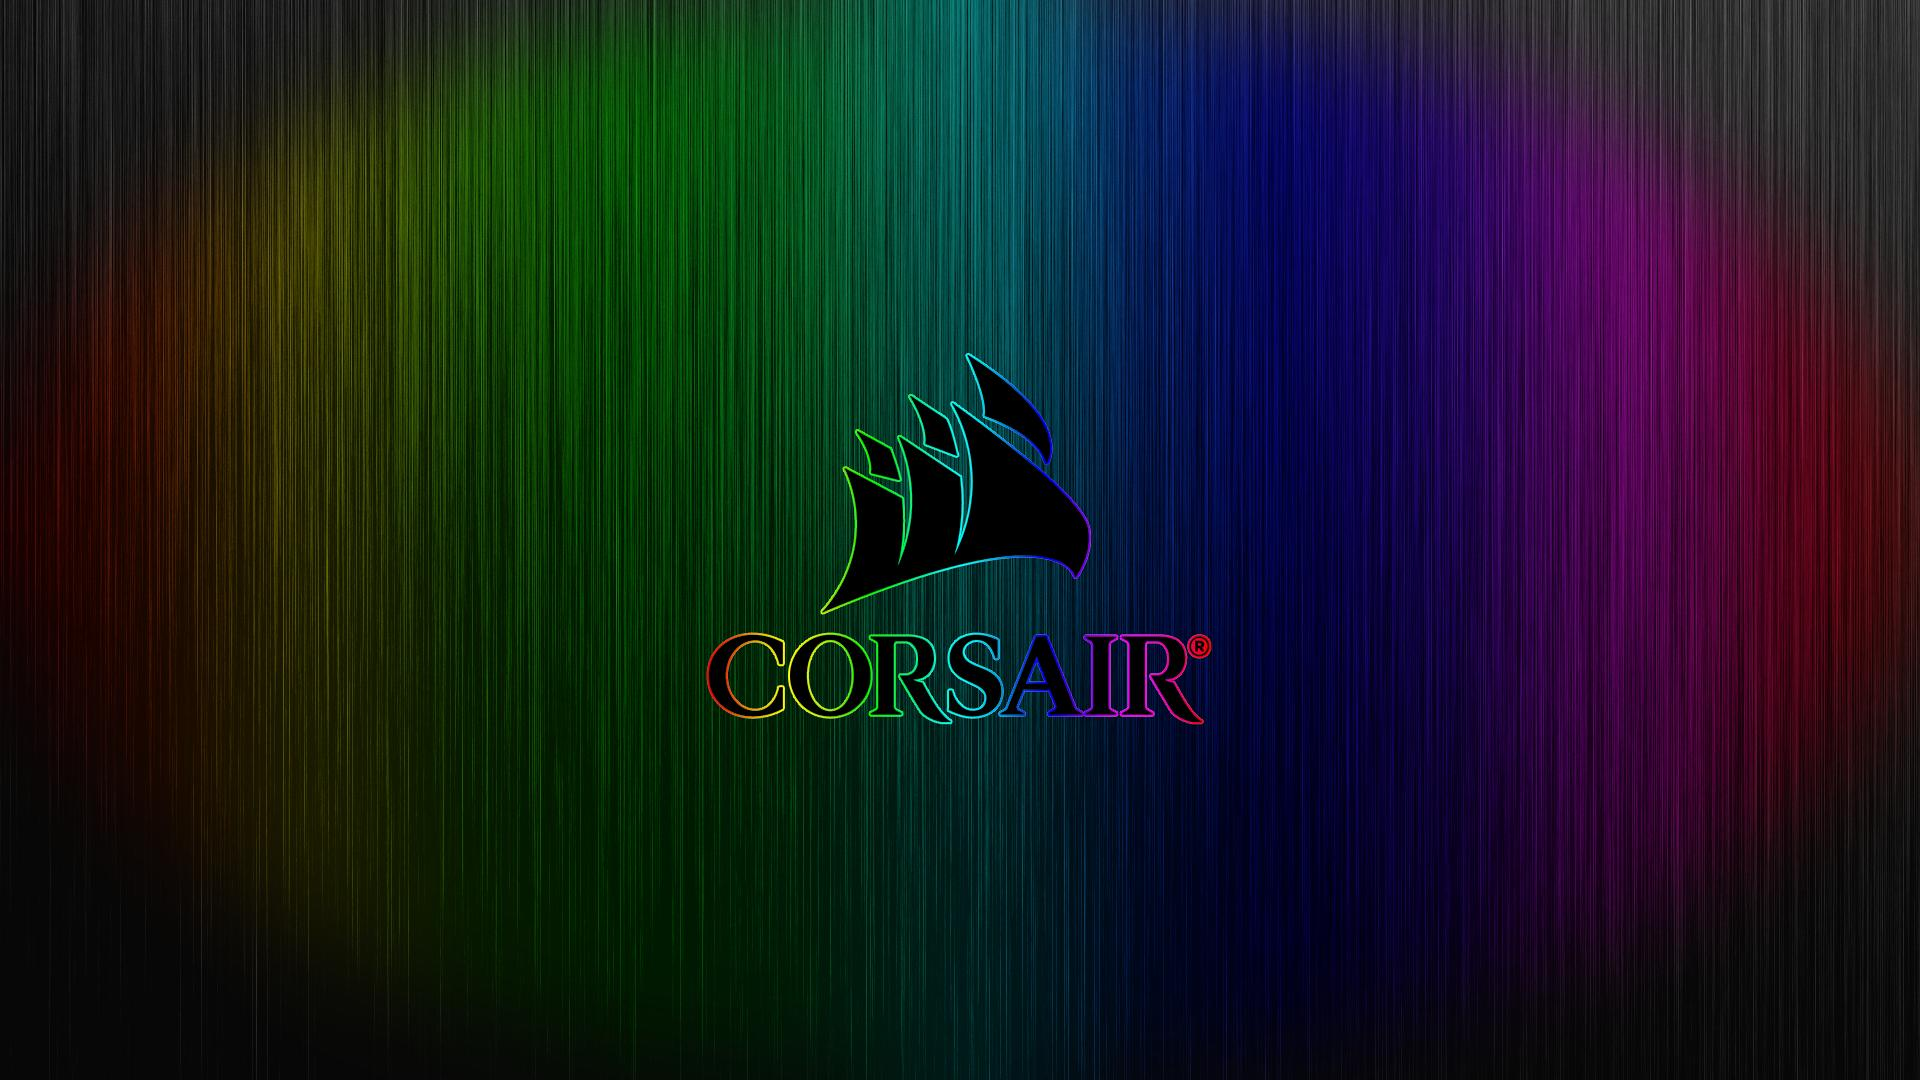 CORSAIR Headsets, Keyboards, Mice, Mouse Pads